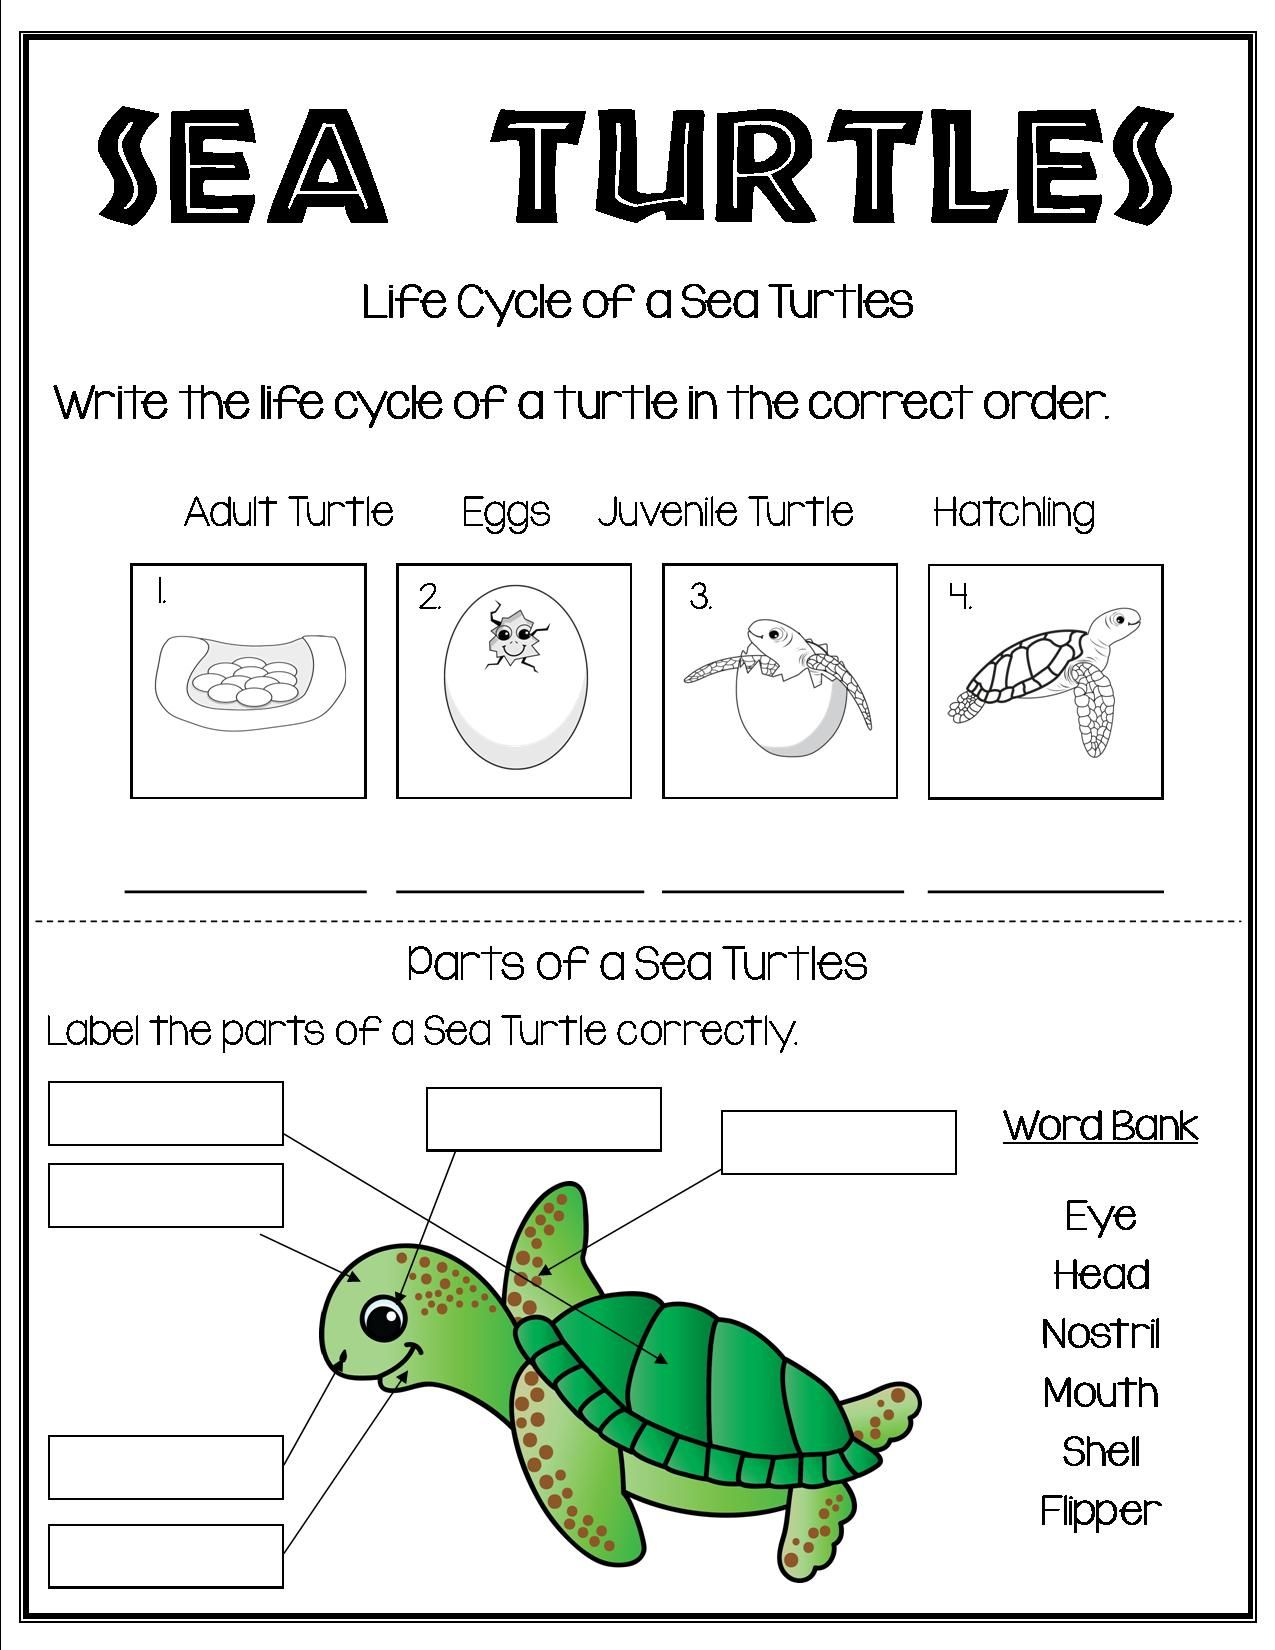 All About Sea Turtles Turtle Life Cycle Sea Turtle Life Cycle Turtle Life